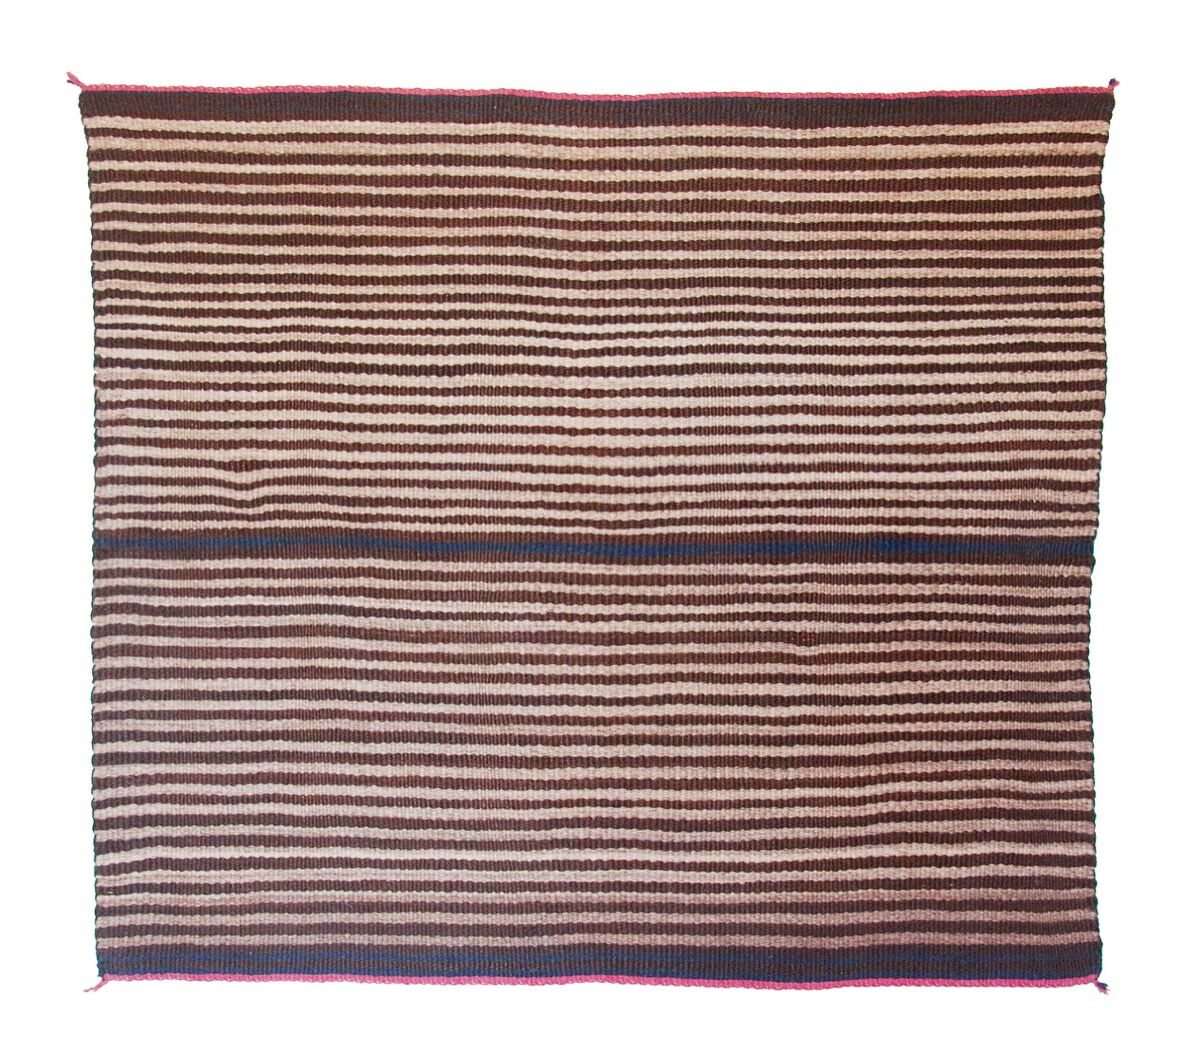 Navajo people, A Classic First Phase Chief's Blanket, Woman's Style, Navajo, c. 1860. © 2017 Joshua Baer & Company, a New Mexico Corporation. Courtesy of